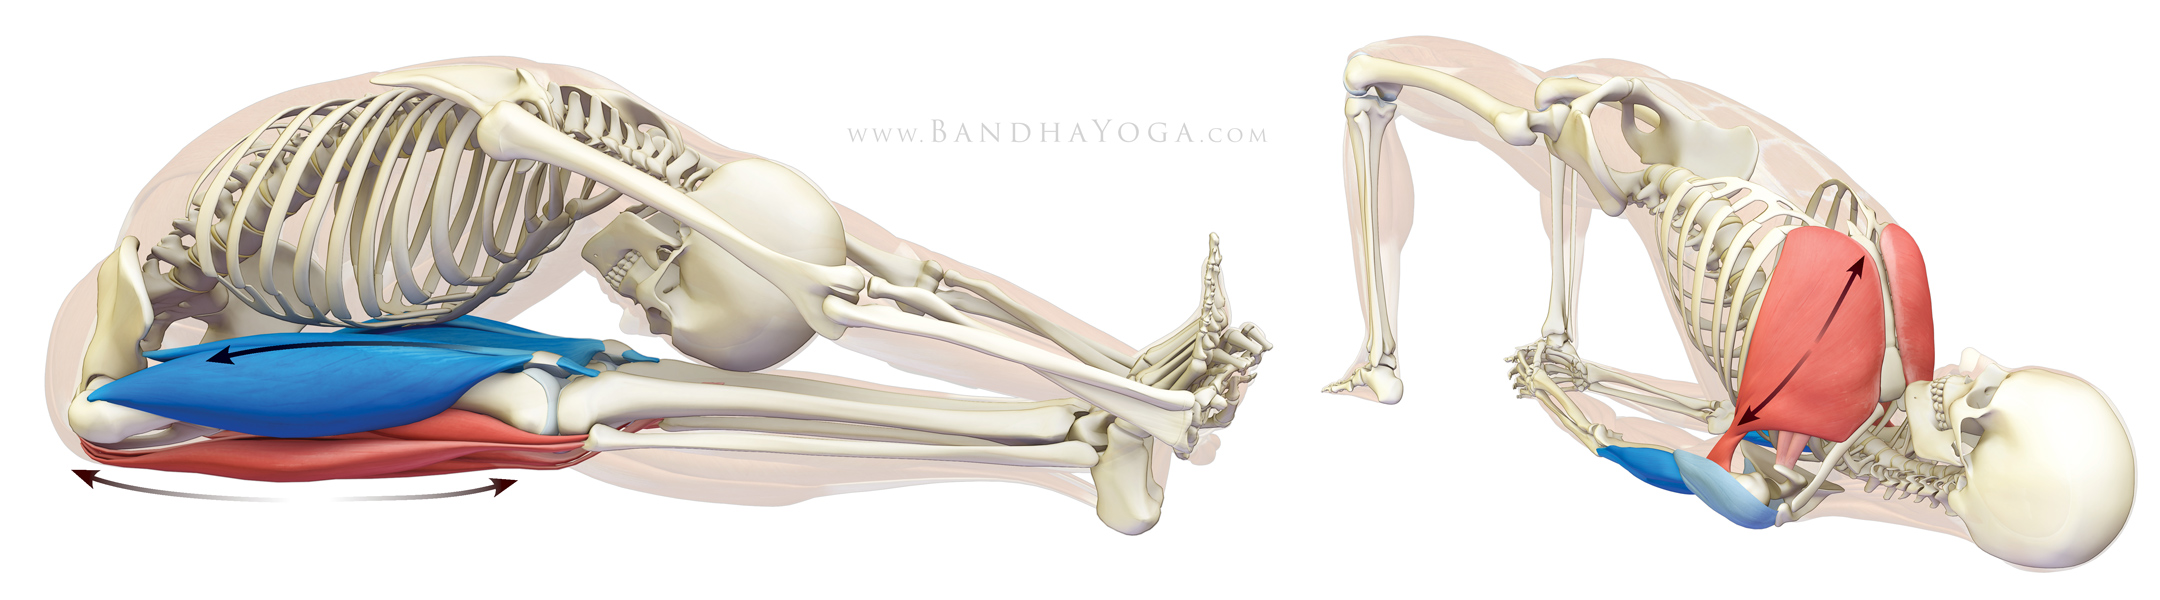 The Daily Bandha: Stretching, Aging and Your Down Dog